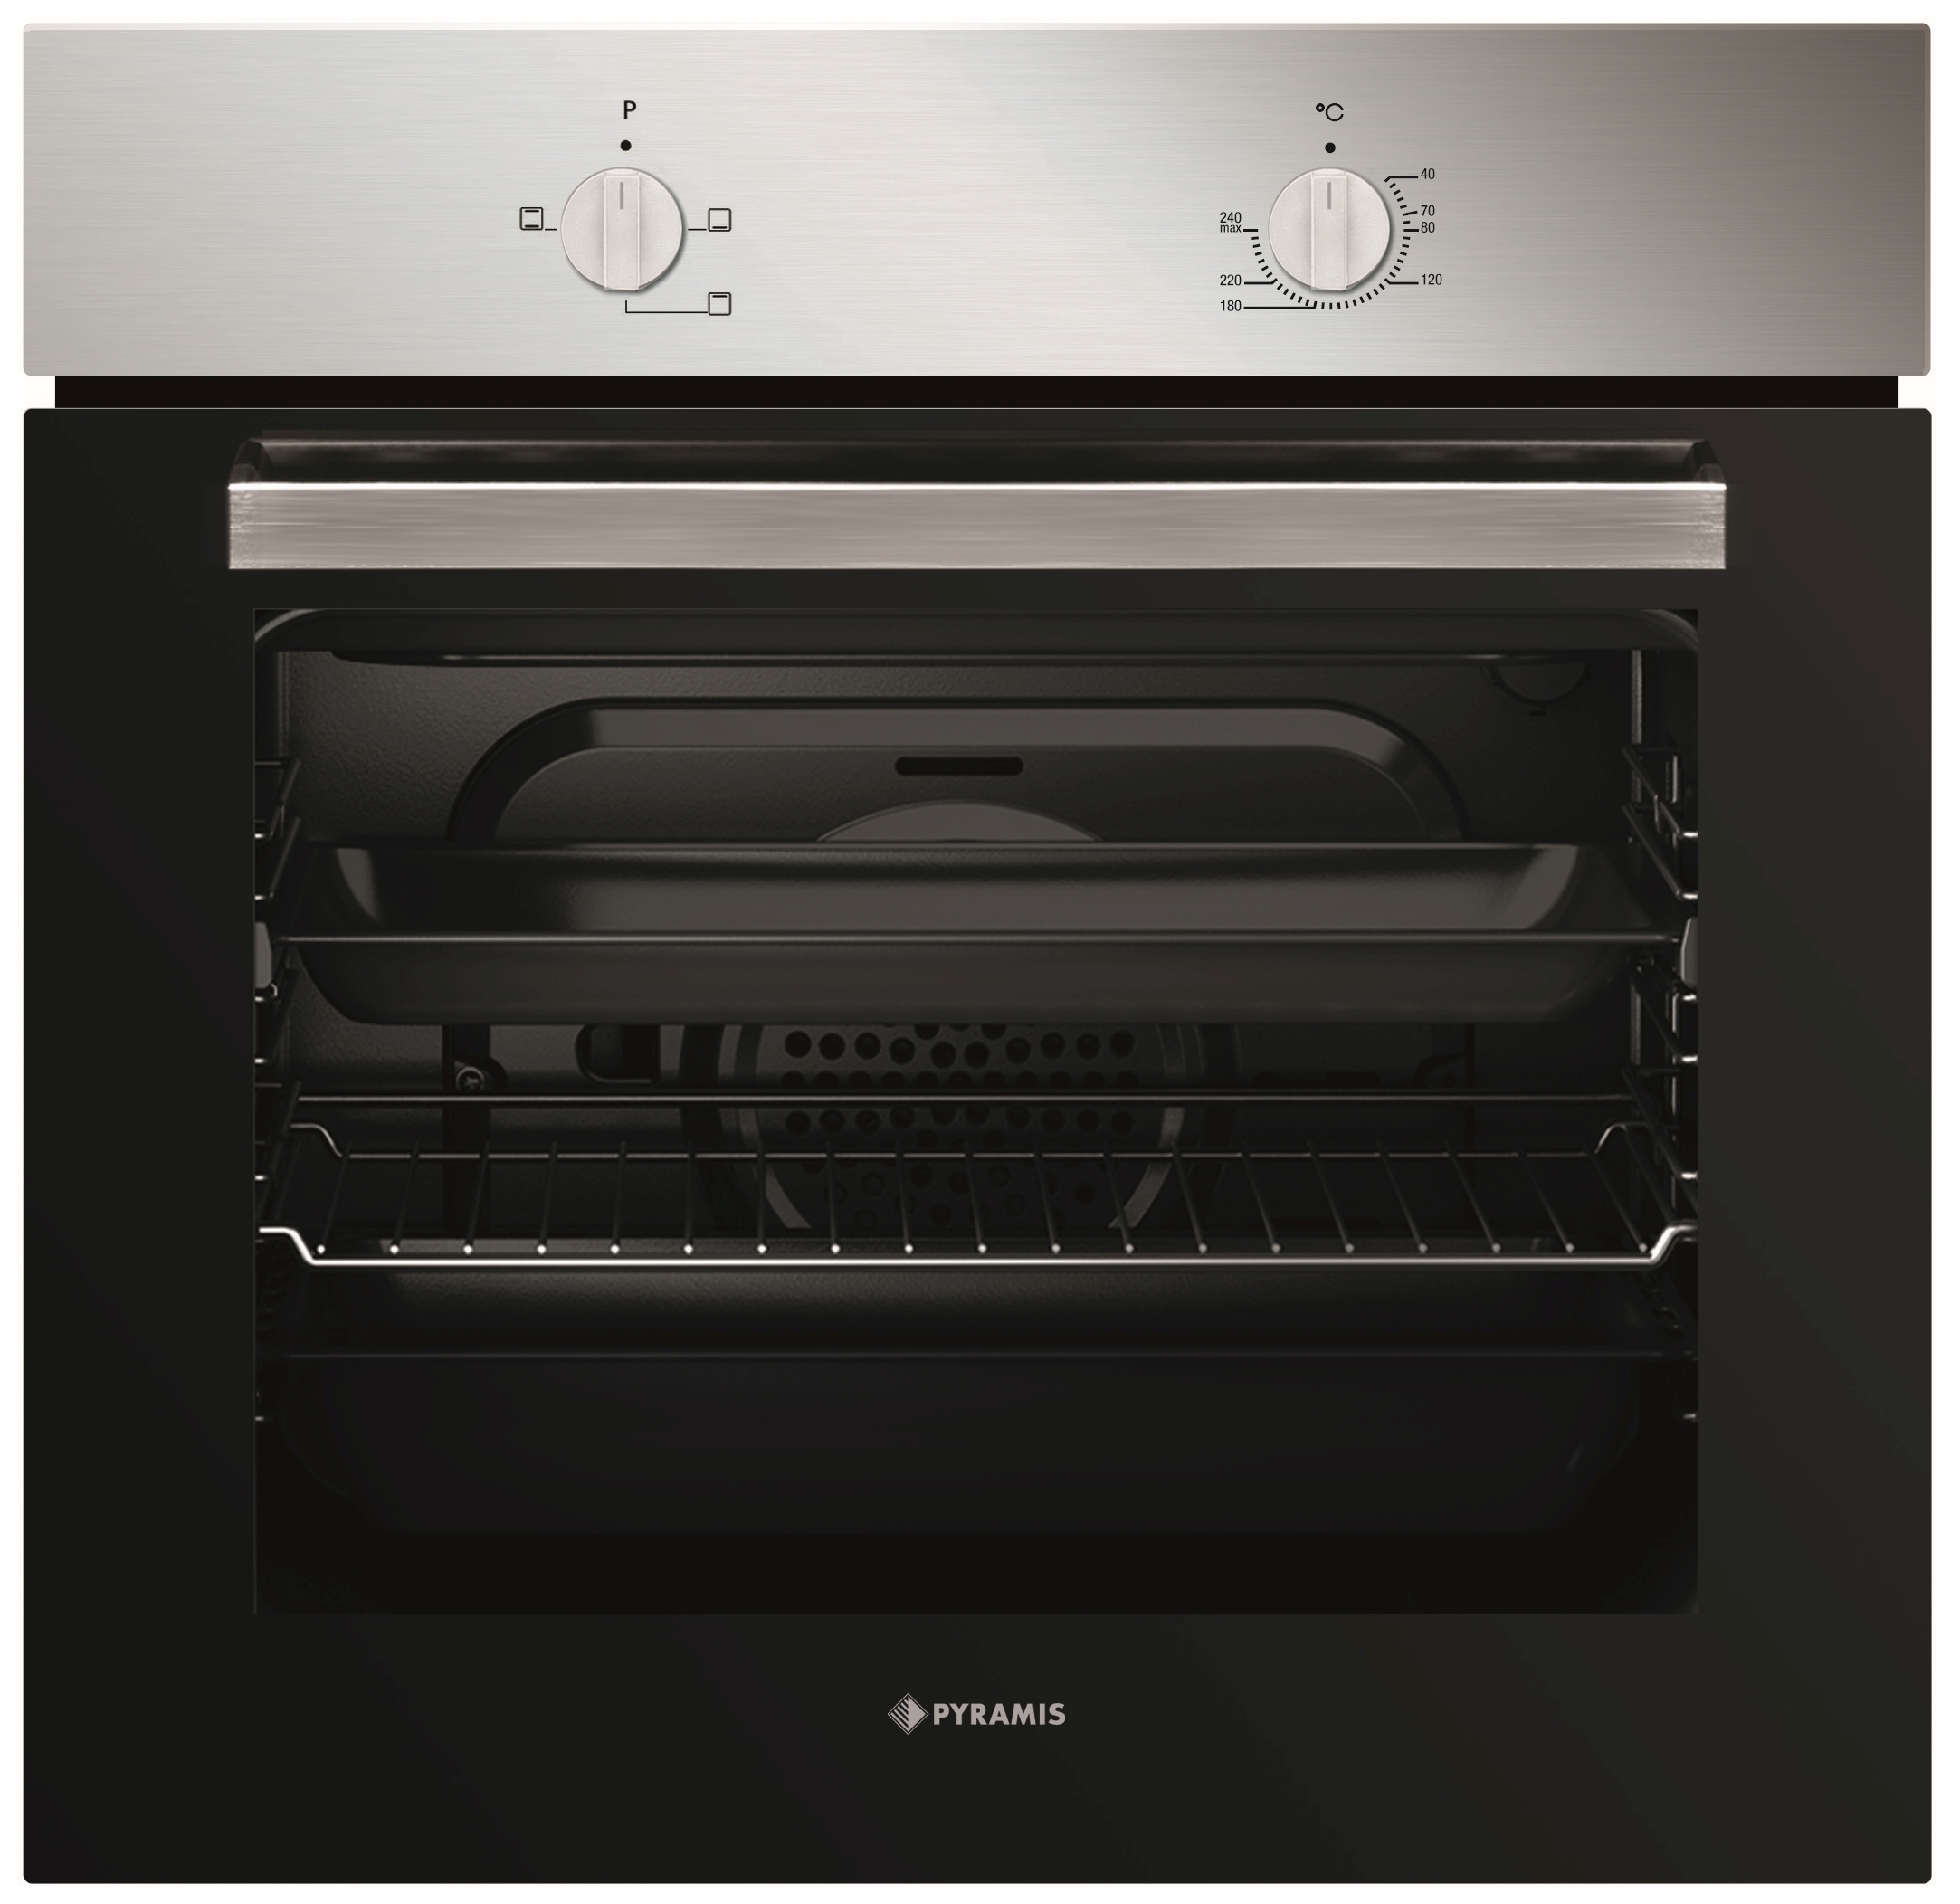 Backofen 60In 1200 inox Backofen - 34003501